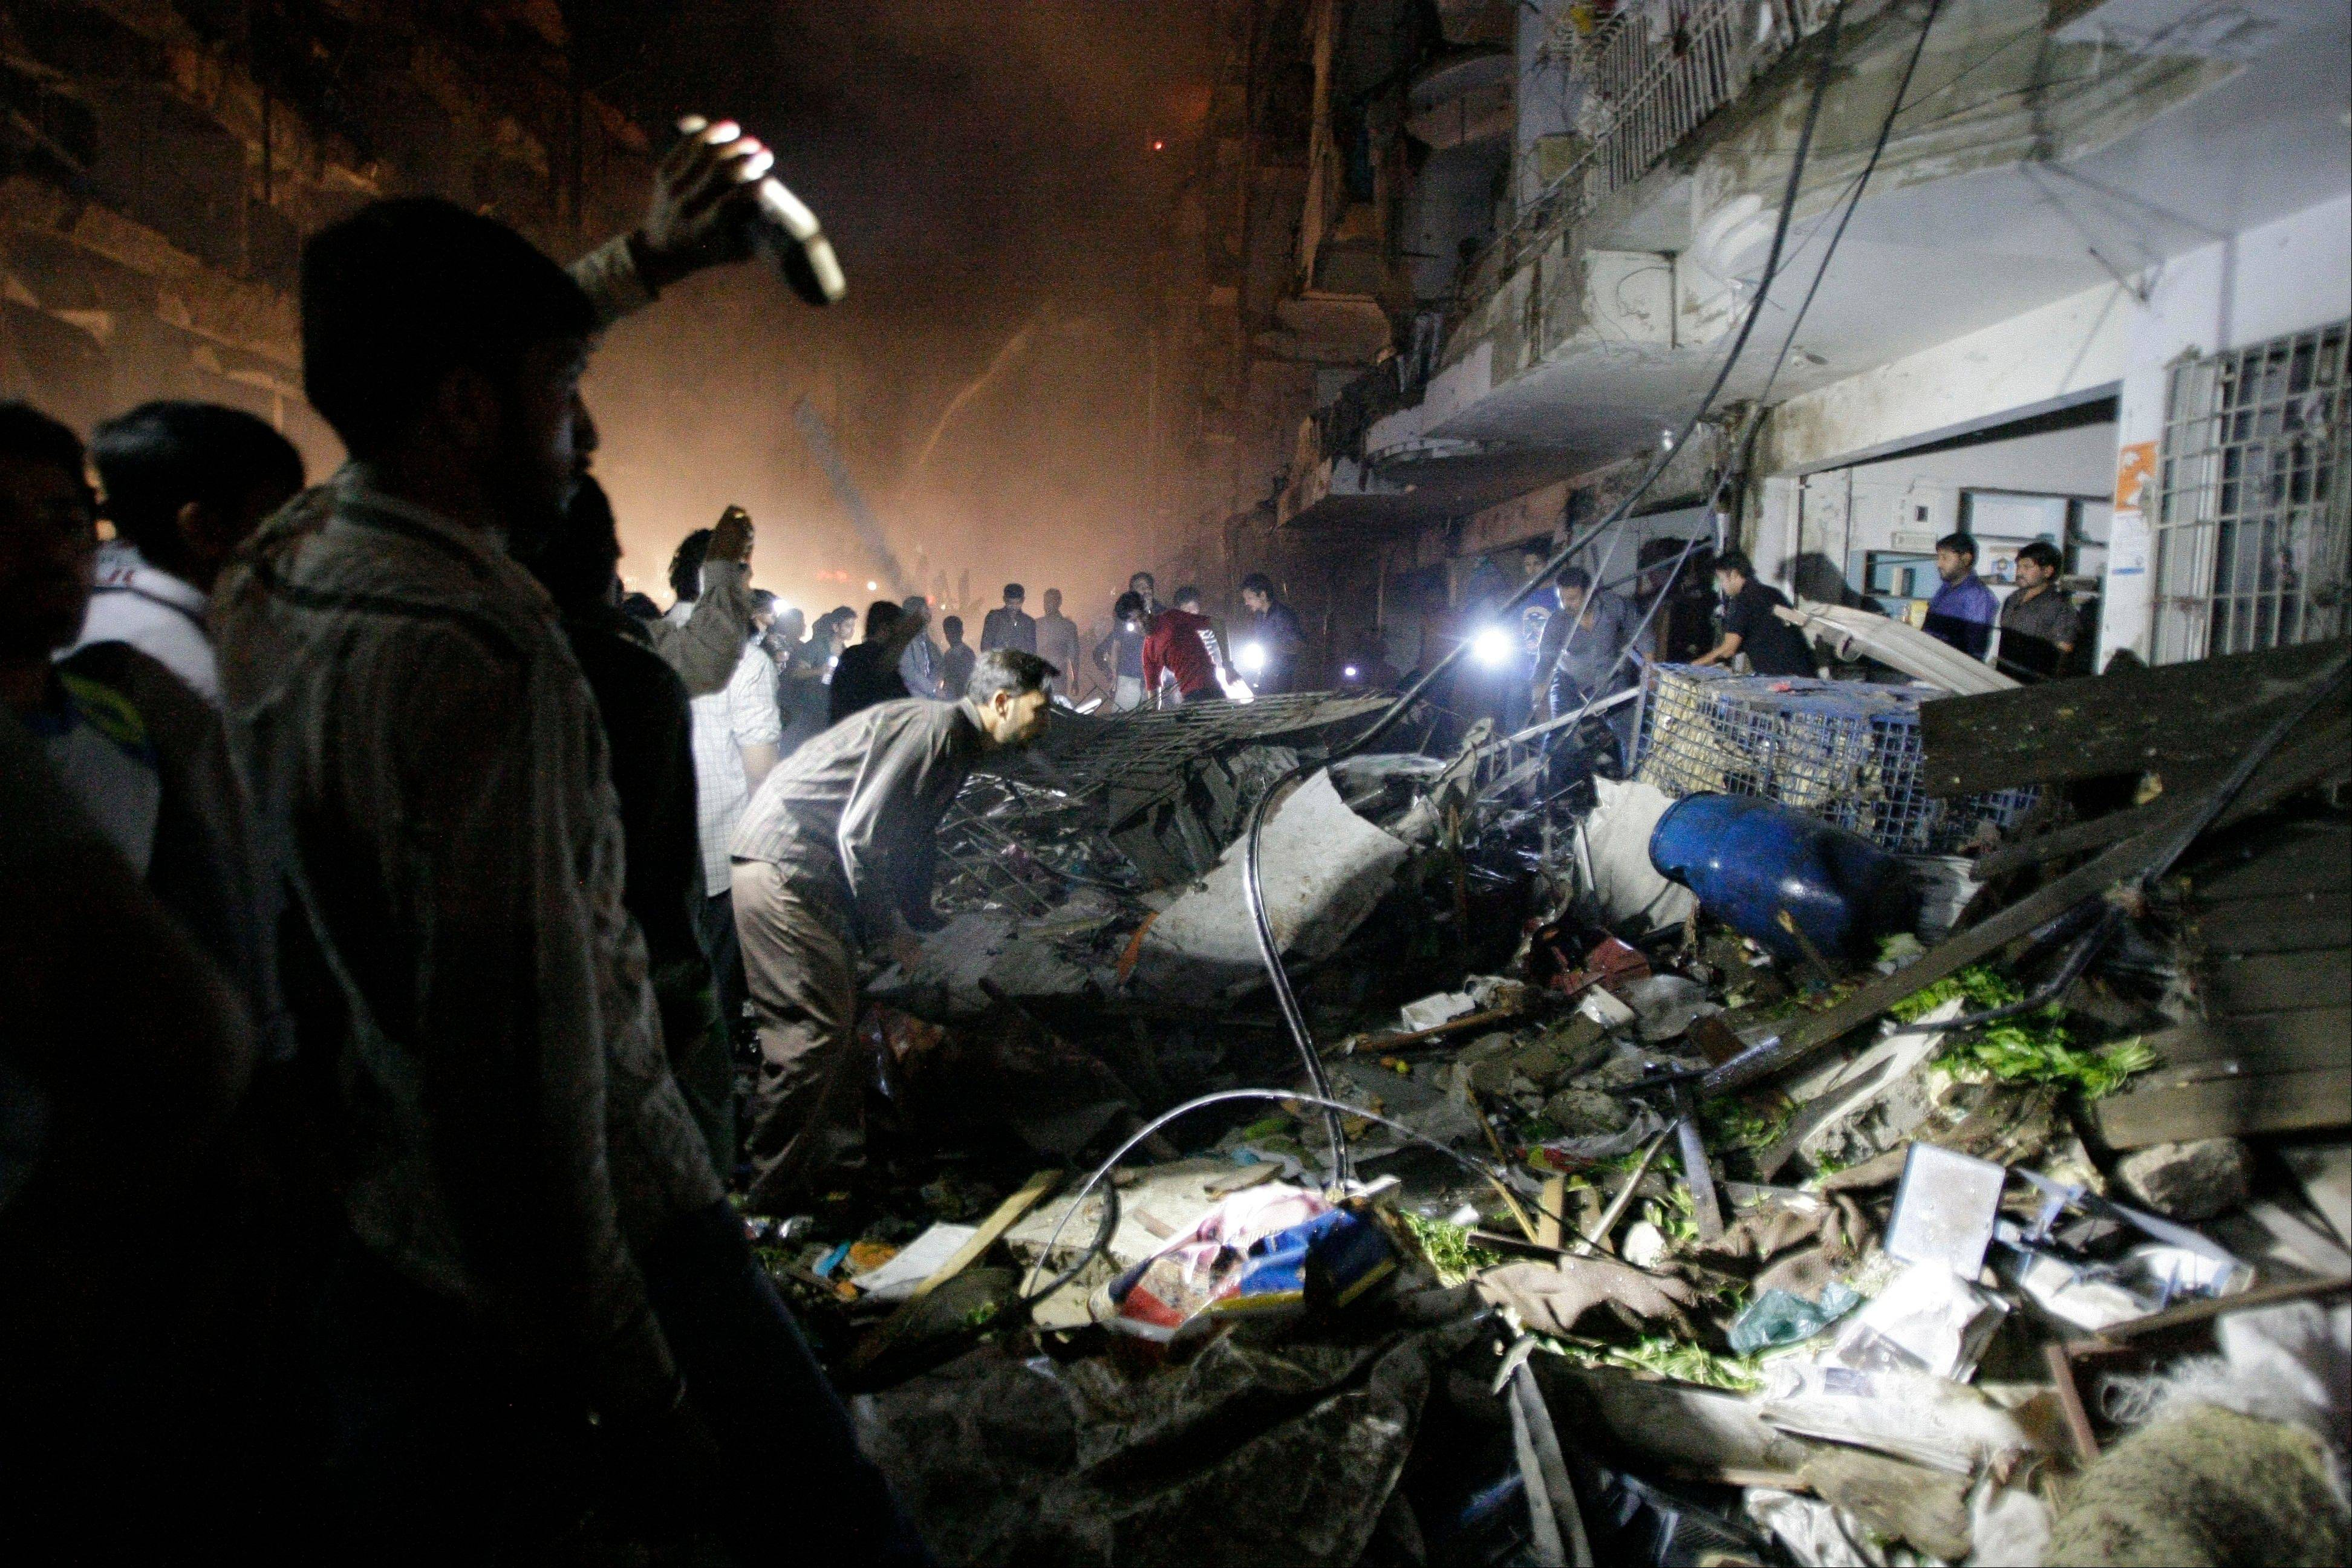 Pakistani check the site of a bomb blast in Karachi on Sunday. Pakistani officials say the bomb blast has killed dozens of people in a neighborhood dominated by Shiite Muslims.